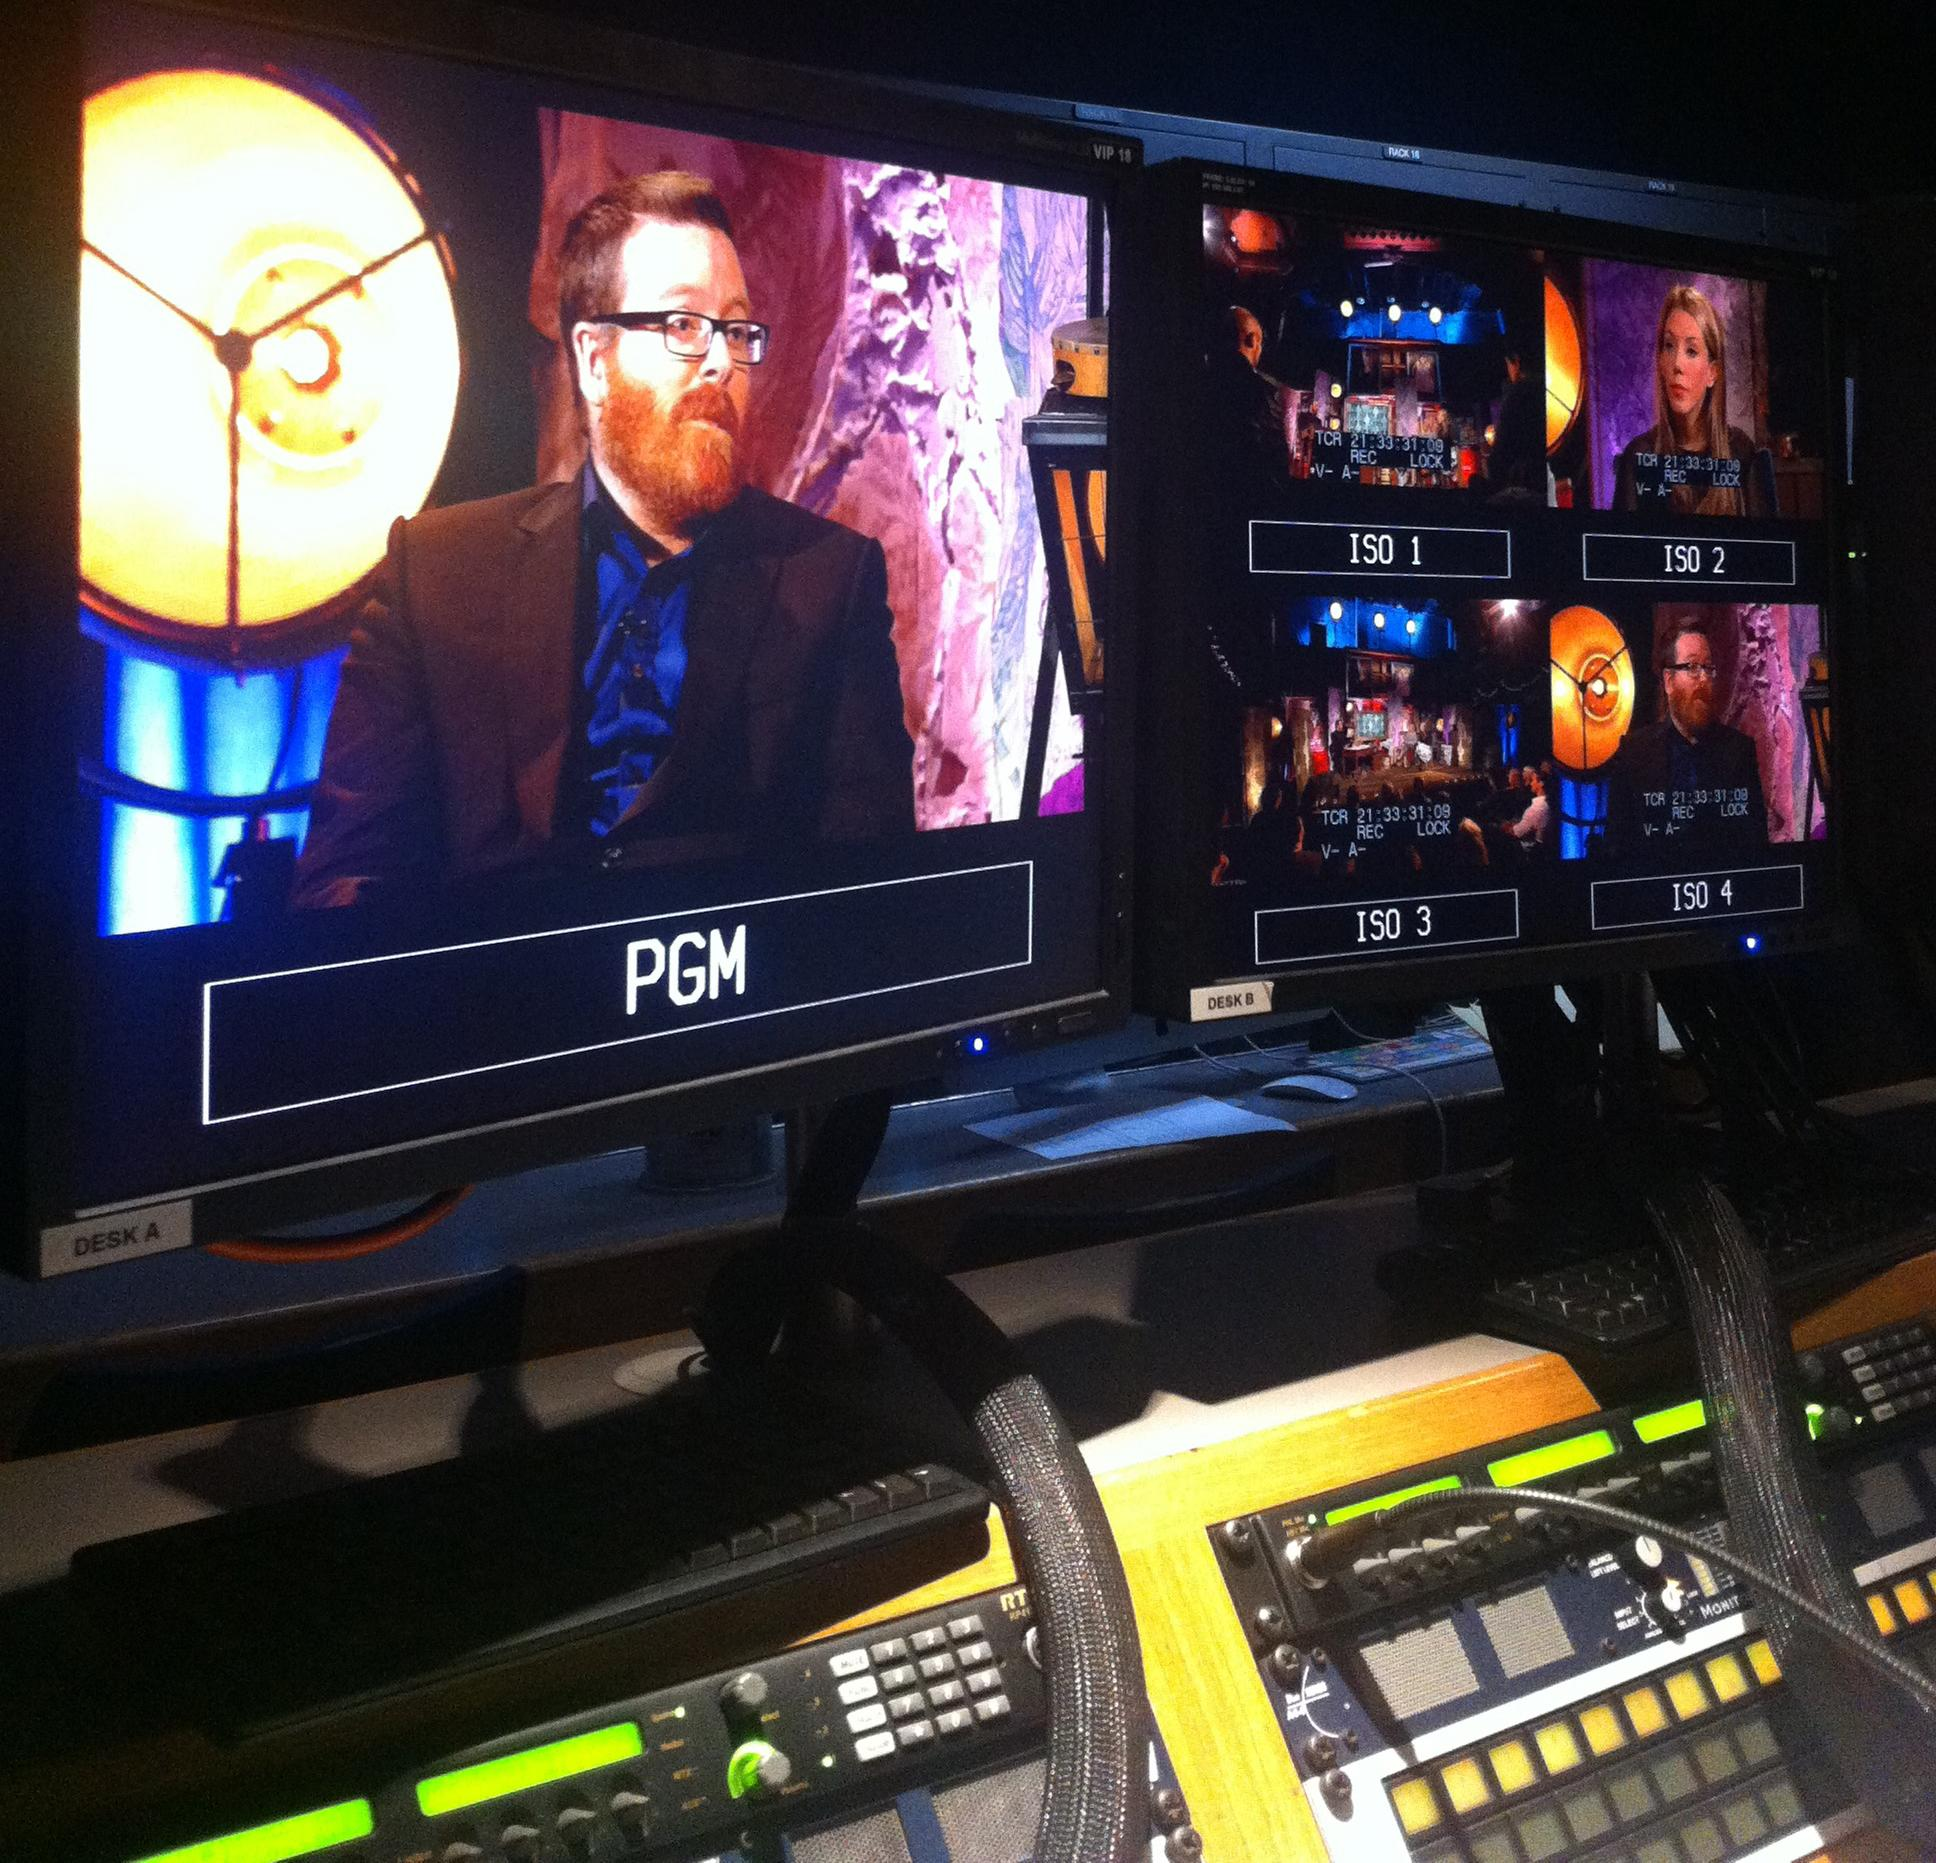 RT @BBCiPlayer: In the edit for @FrankieBoyle 's Referendum Autopsy – available on Sunday from 9pm http://t.co/Pcew6T1QhL #indyref http://t…